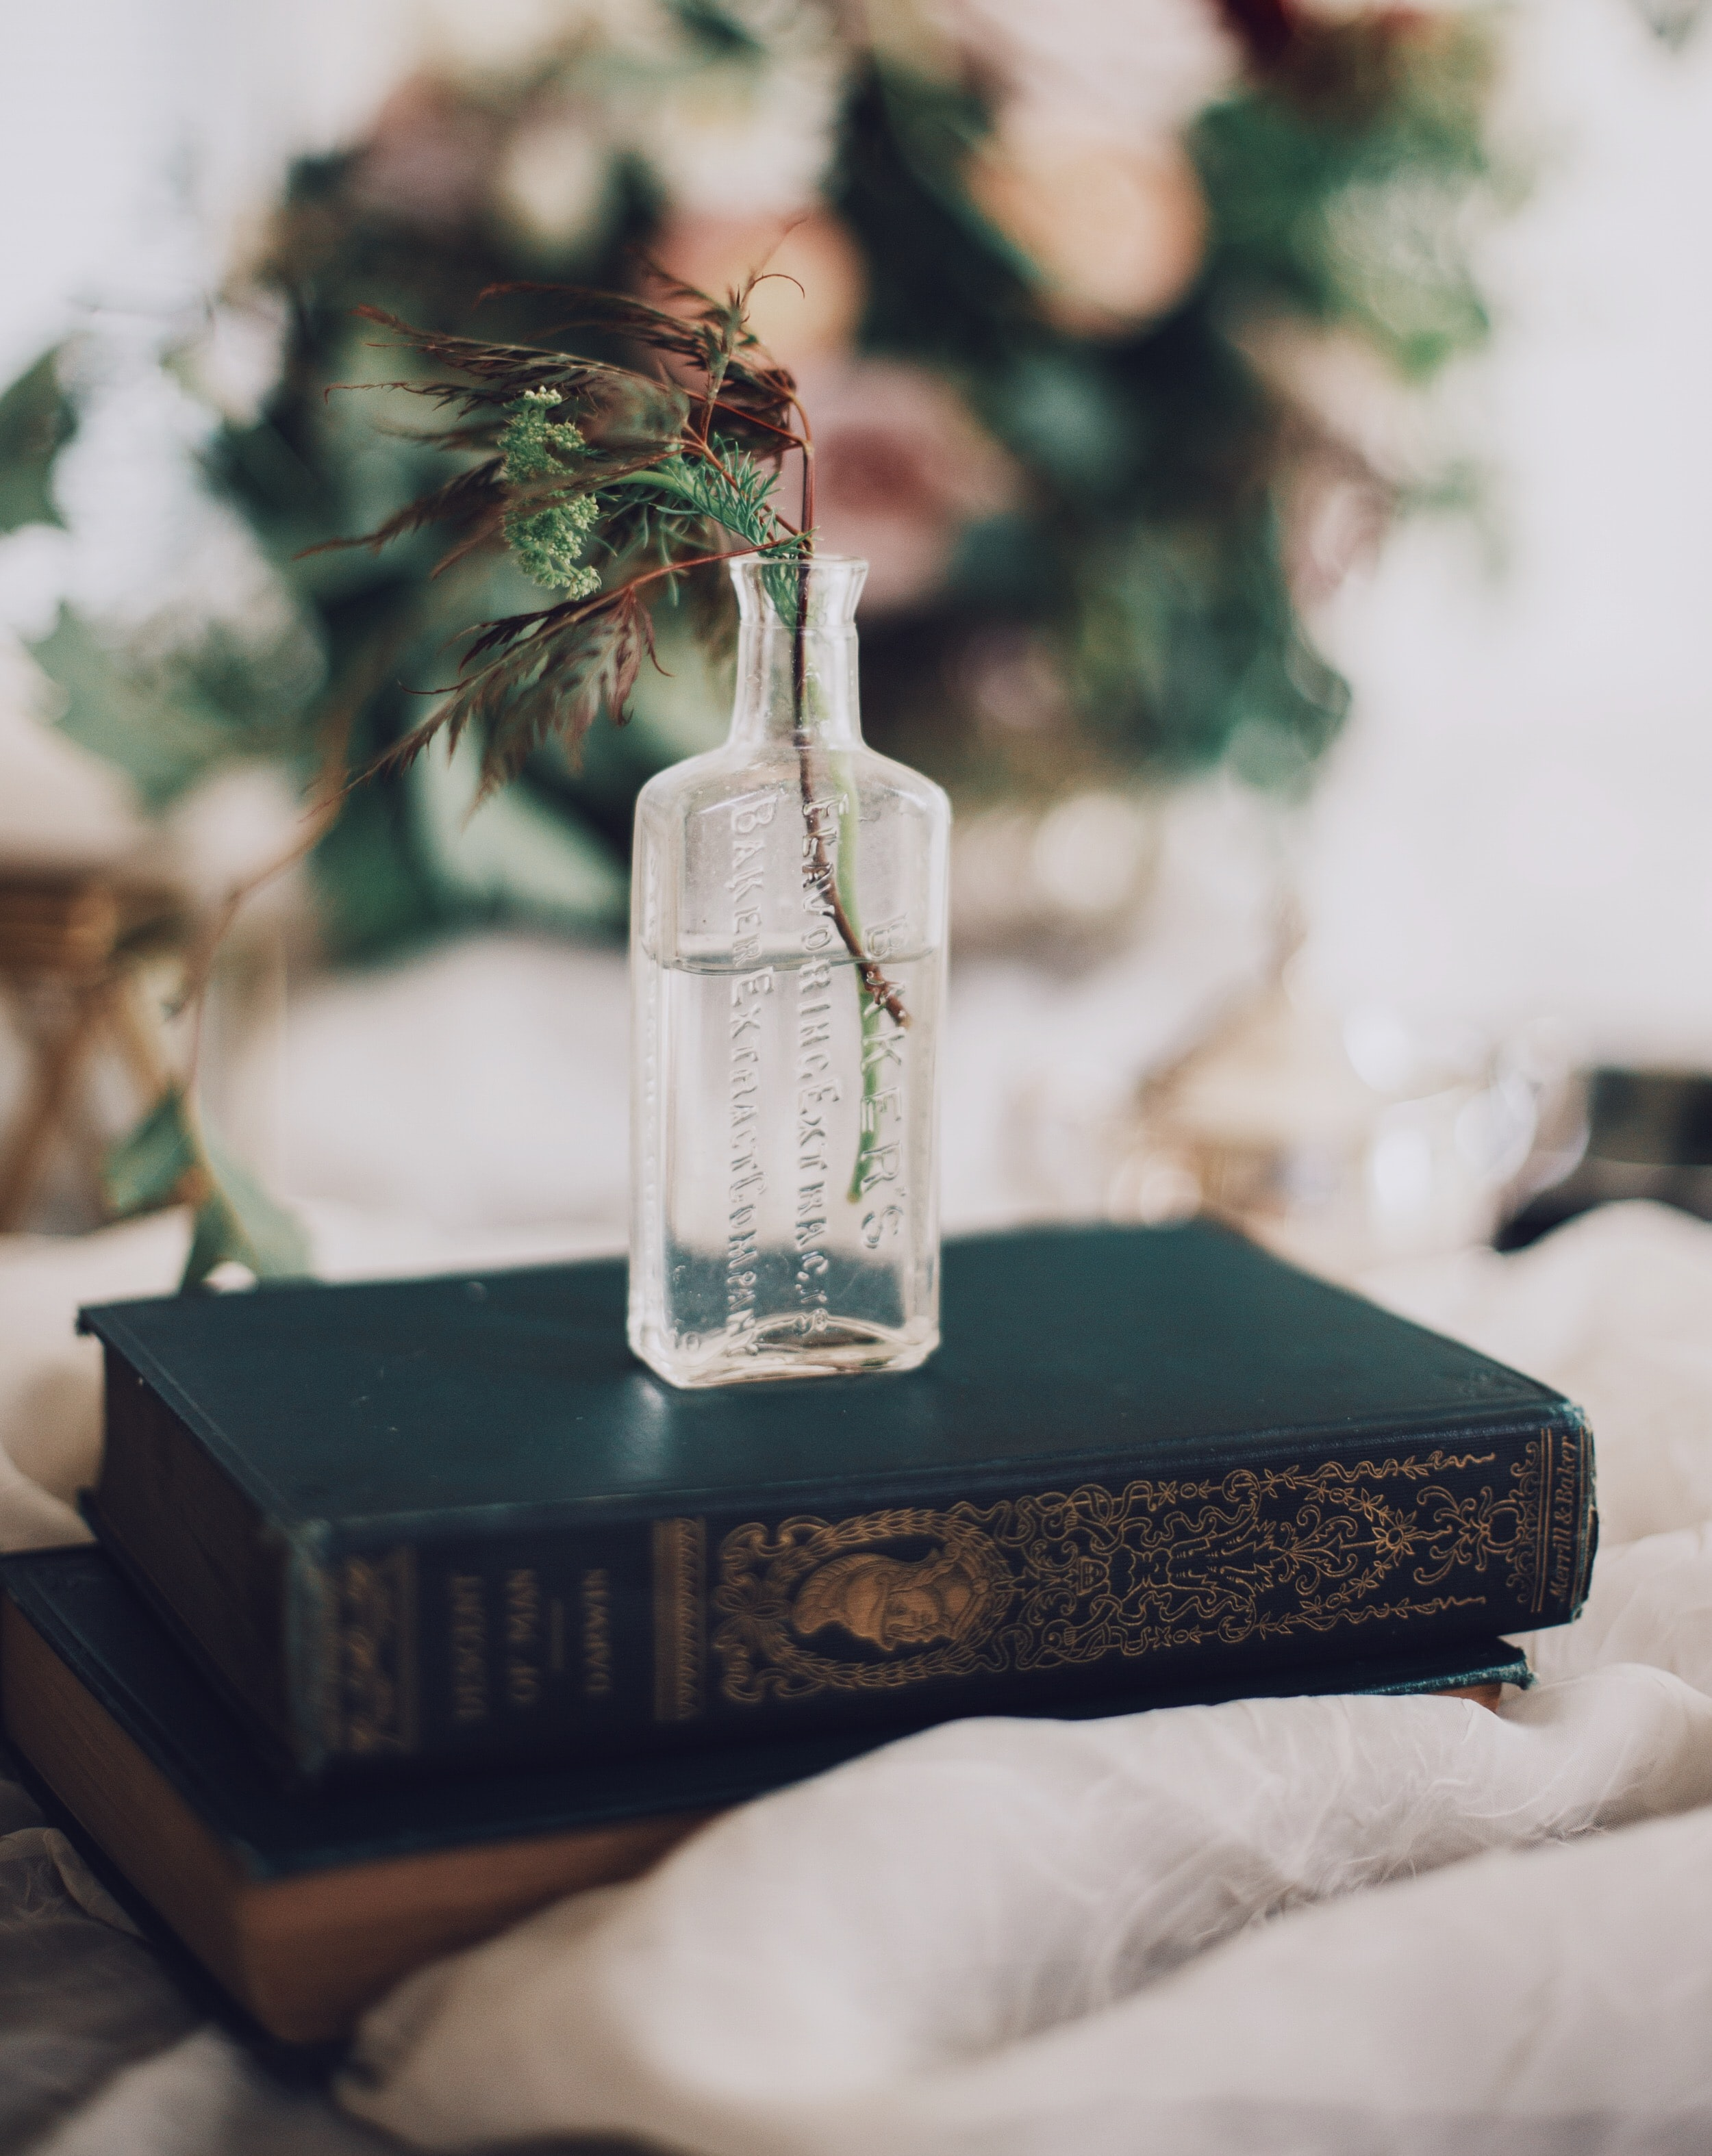 Blurry image of an old bottle holding a plant on top antique books with water inside it.